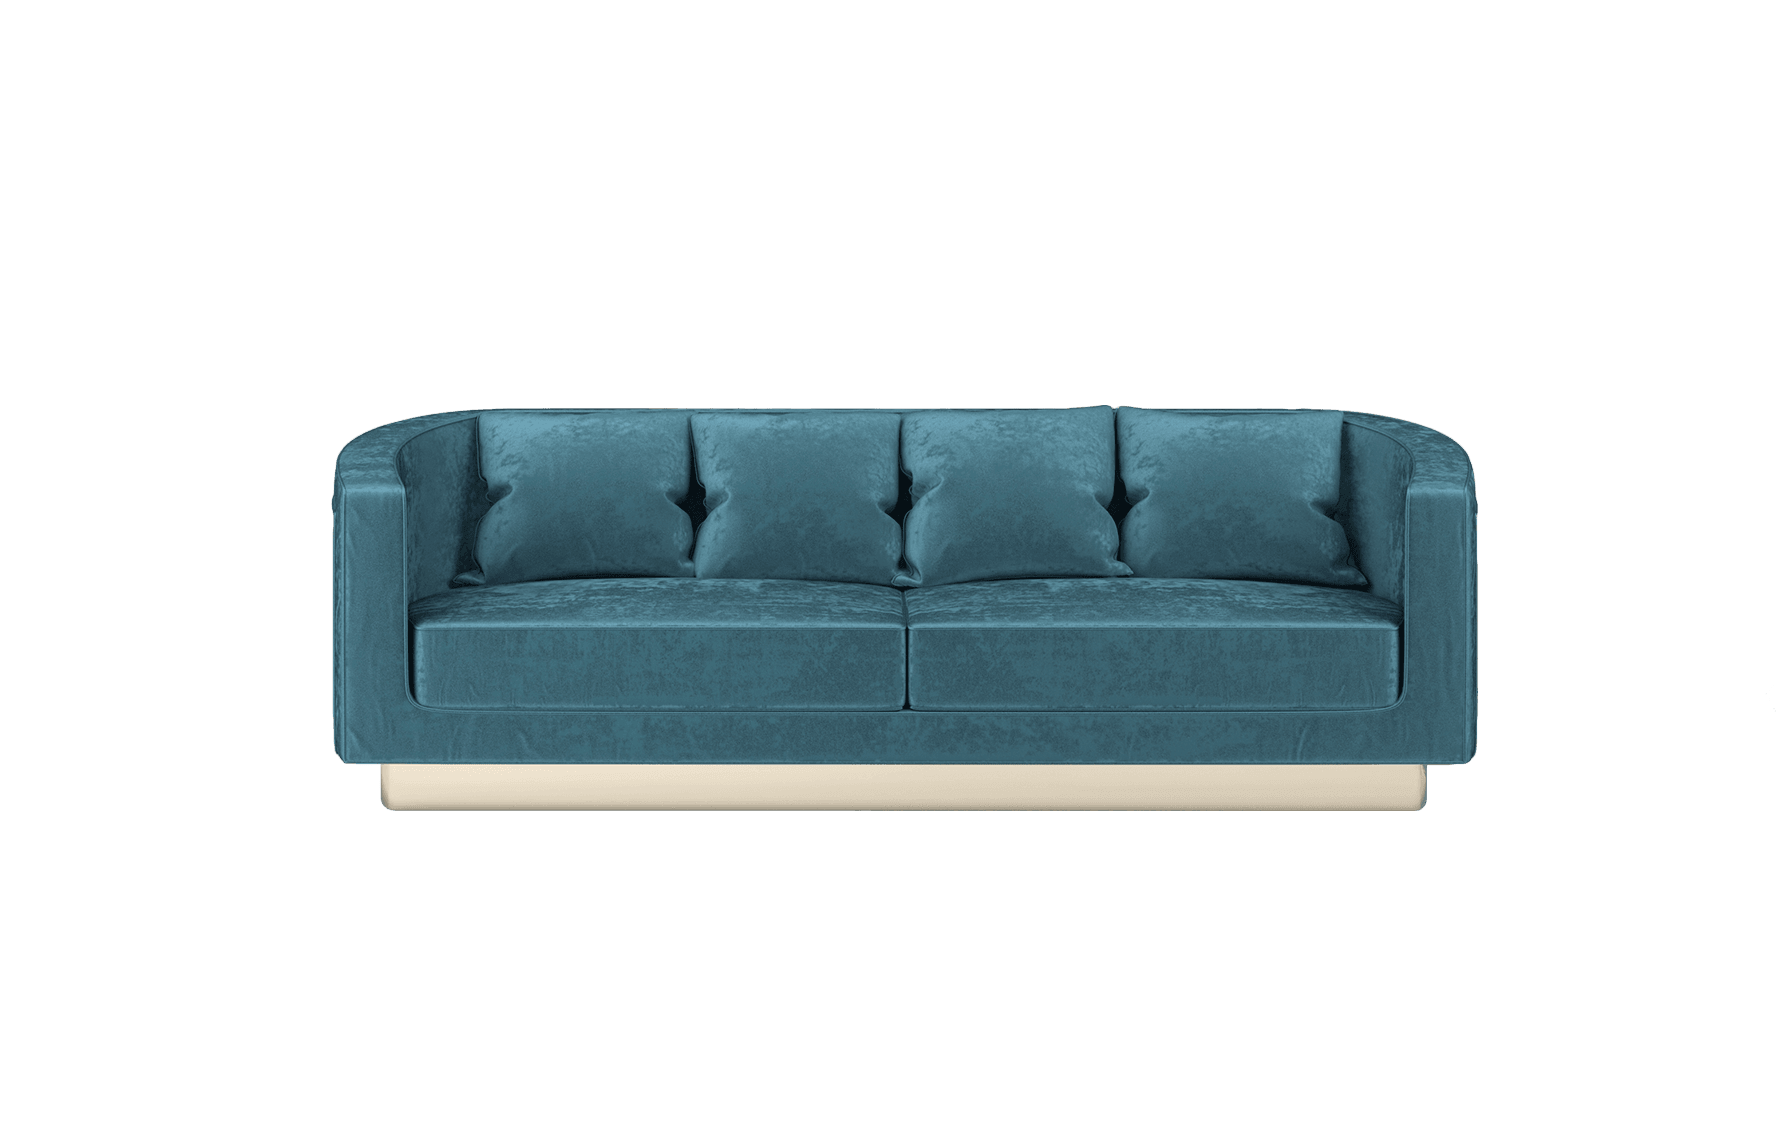 Astonishing Debbie Mid Century Modern Sofa By Ottiu Beyond Upholstery Gmtry Best Dining Table And Chair Ideas Images Gmtryco